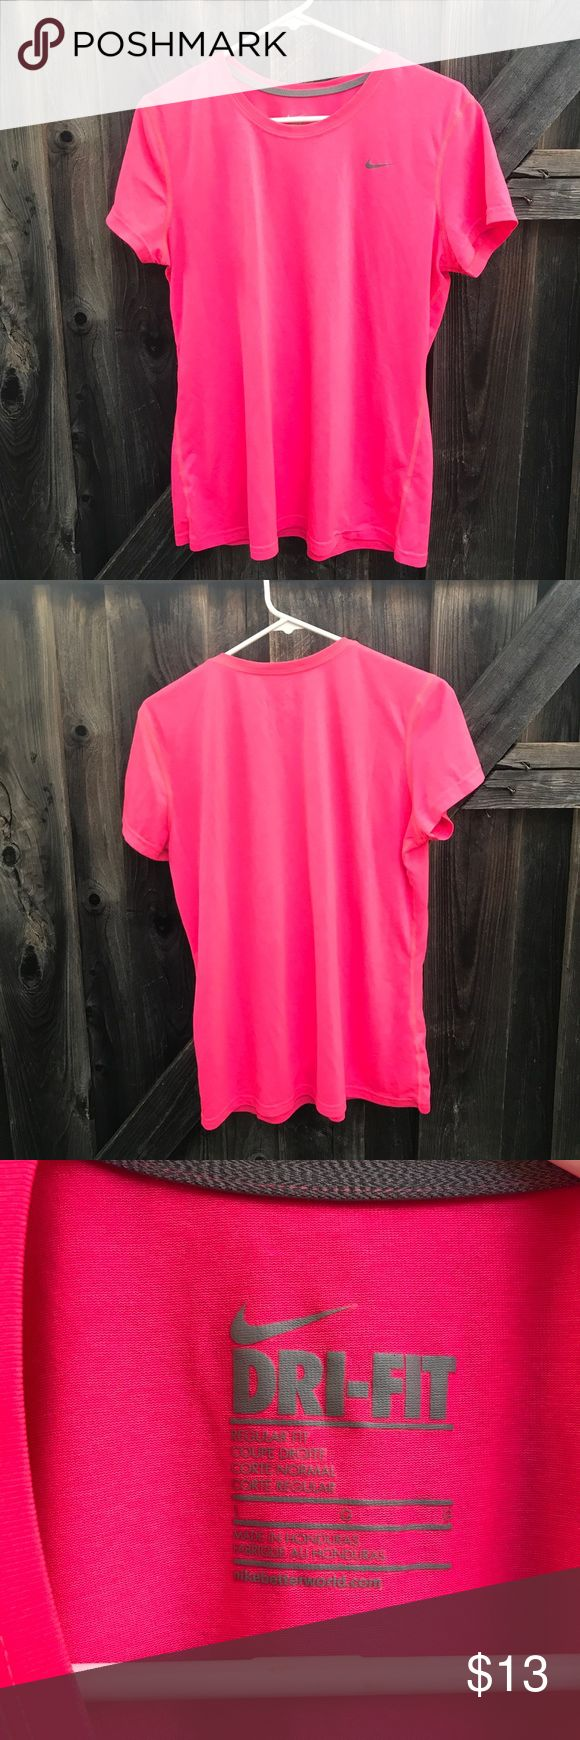 Nike Dri Fit women's tank top Nike Dri Fit women's work out top Pink Size large Length 26.5 Armpit to armpit 20.5 Shoulder to shoulder 16 C5 Nike Tops Tees - Short Sleeve